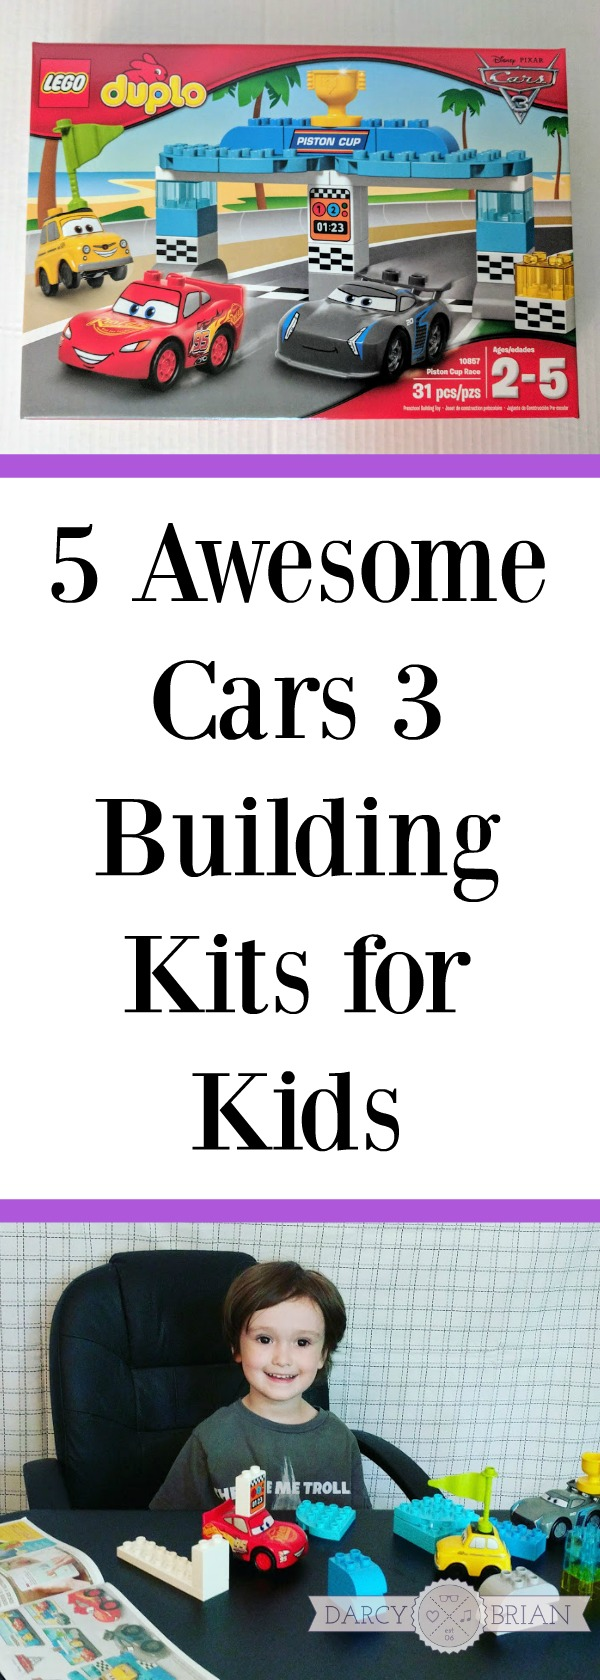 These Cars 3 toys are so fun! Are you shopping for a little boy or a little girl who loves to build with LEGO? These Cars 3 building kits are perfect for kids who love the Disney Pixar Cars movies. They also make great educational gifts for kids birthdays and Christmas presents. Save this list for your holiday shopping!